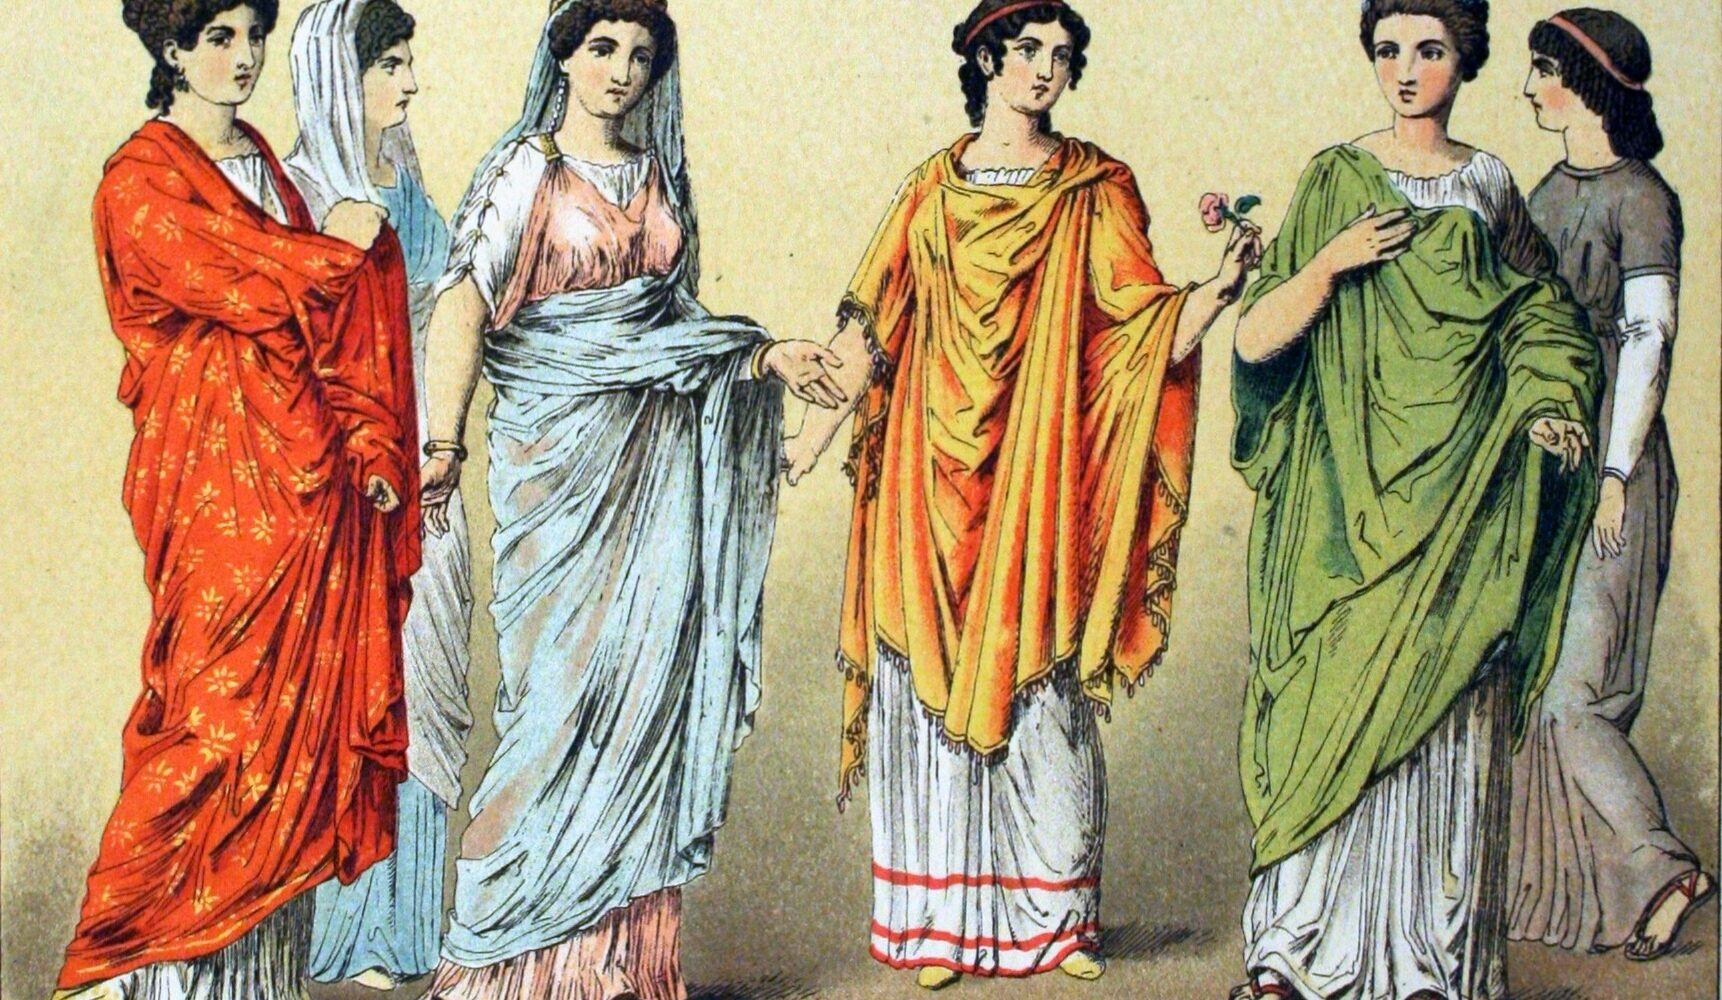 A brief story of colors in renaissance era